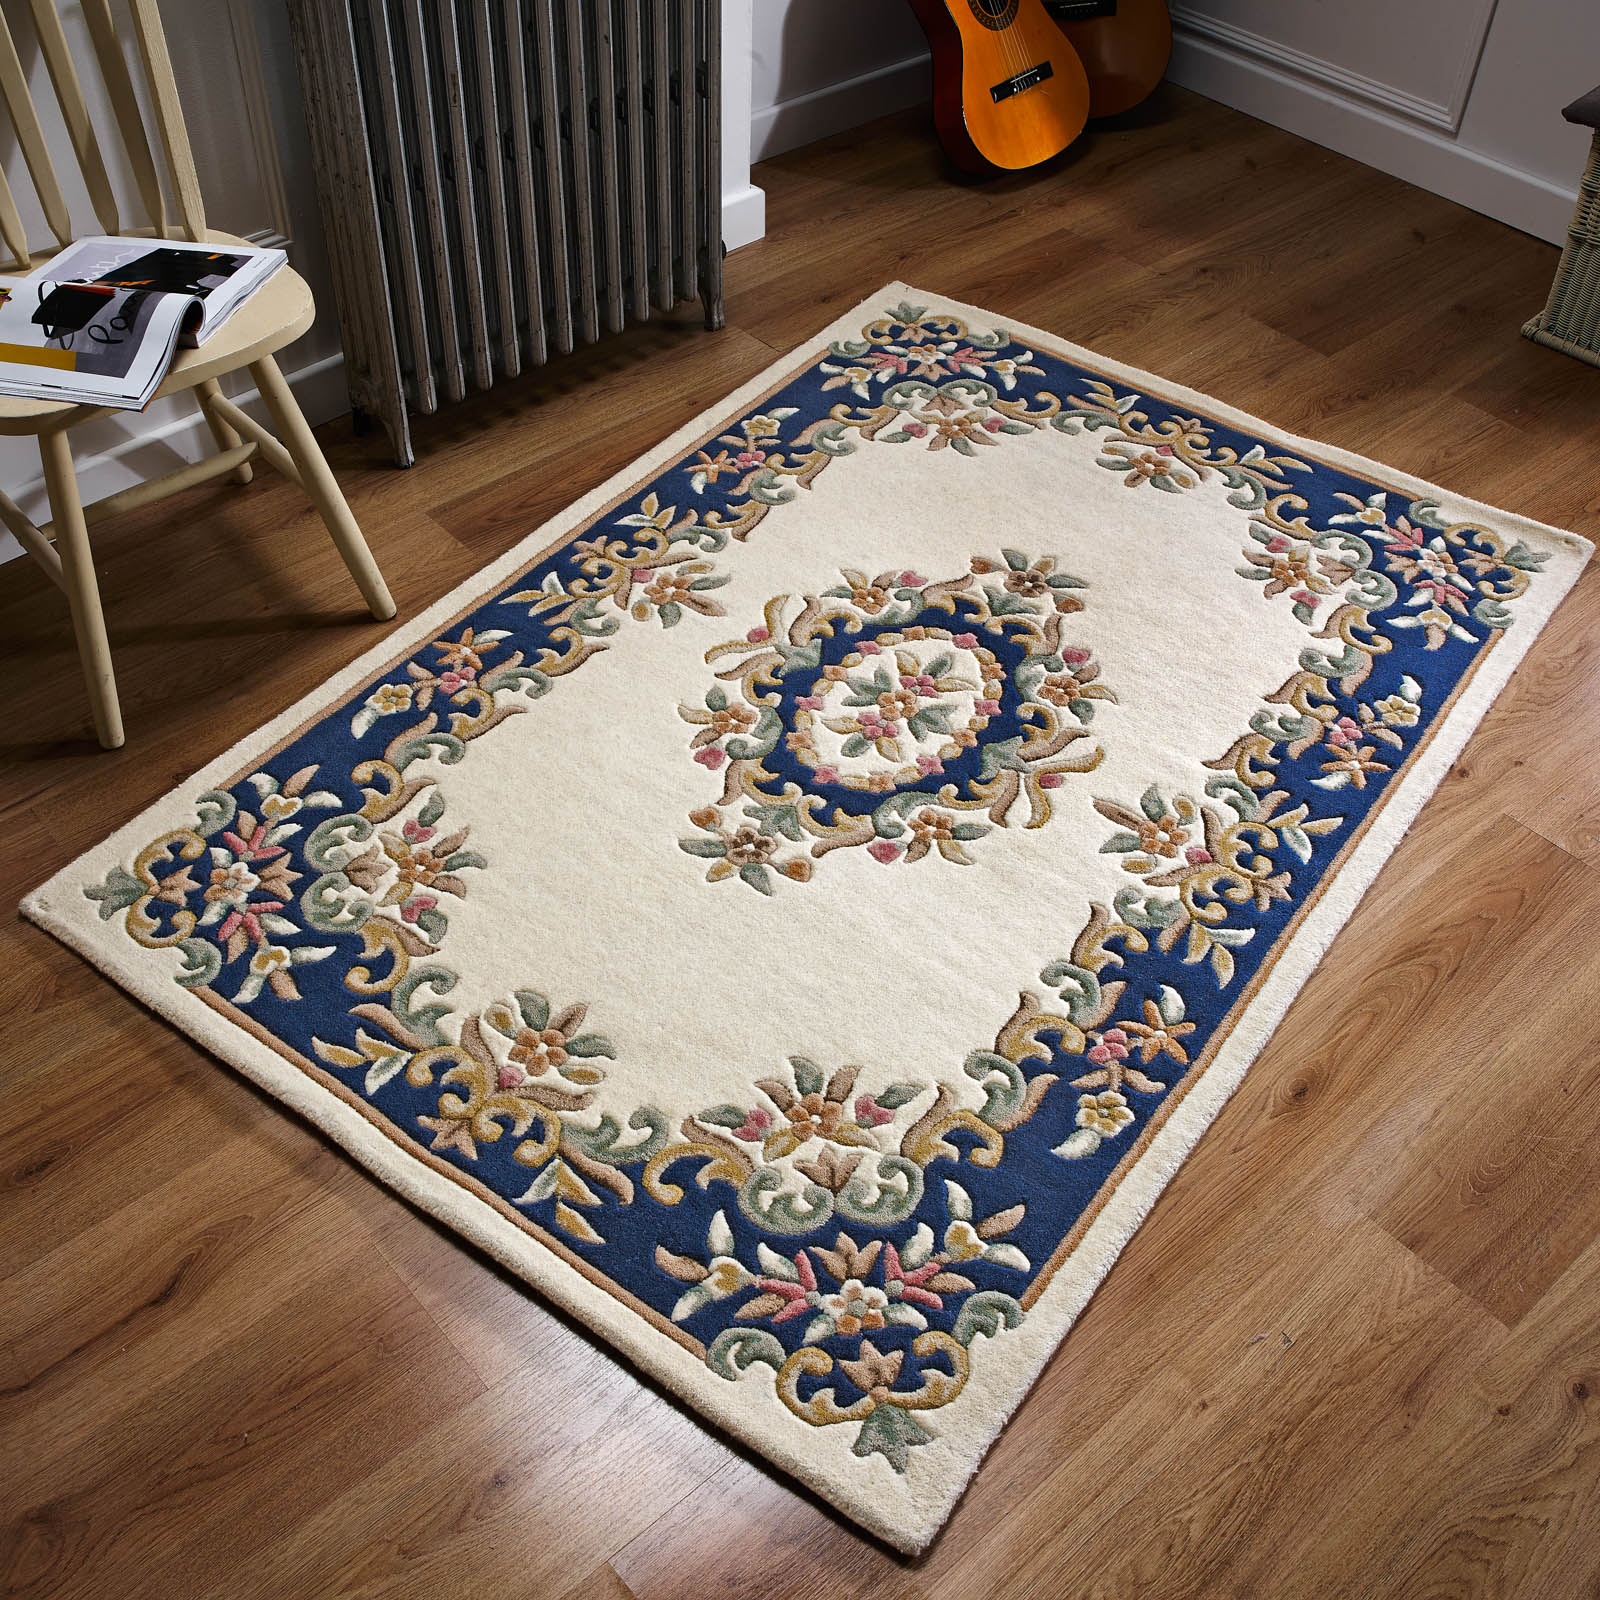 Royal Aubusson Wool rugs in Cream Blue